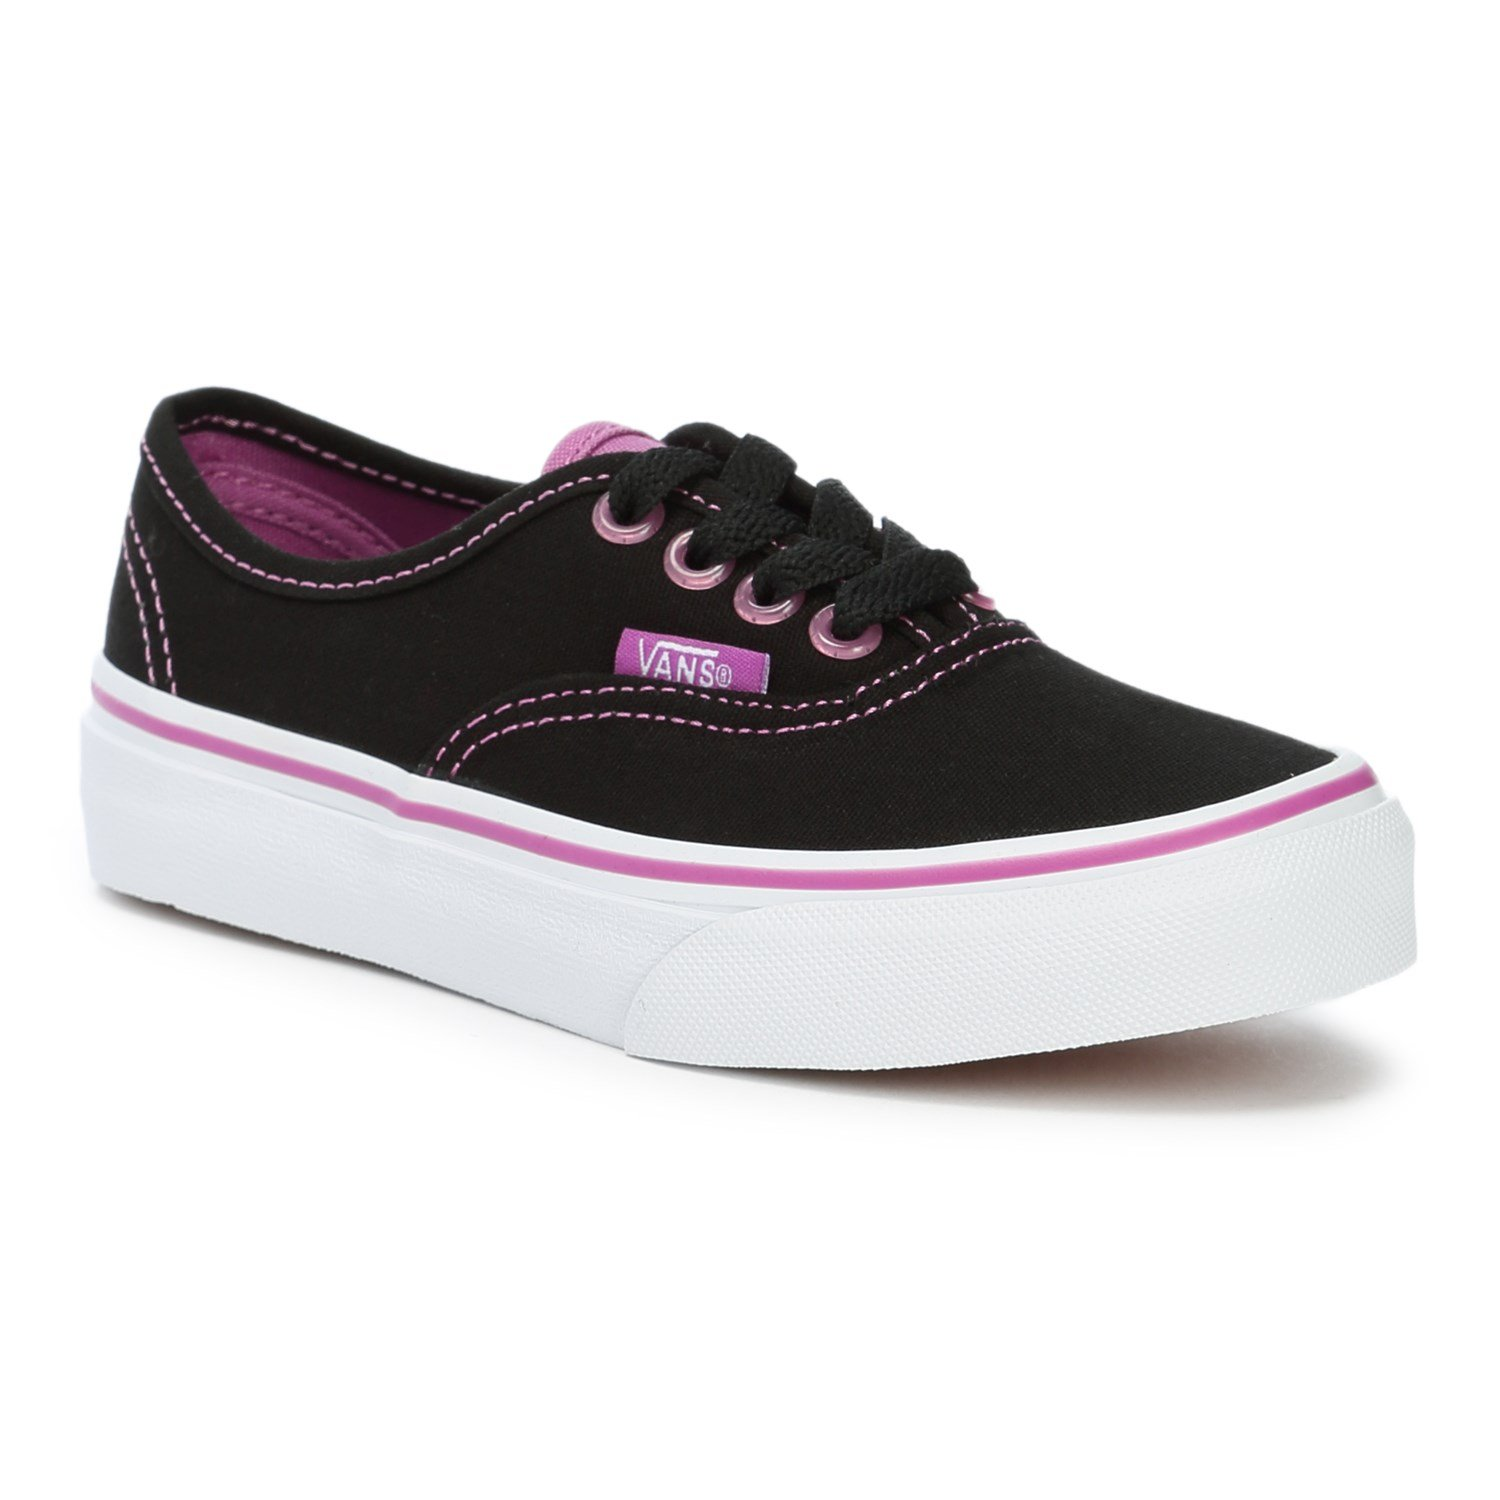 23490be8082b where can you get vans shoes for cheap